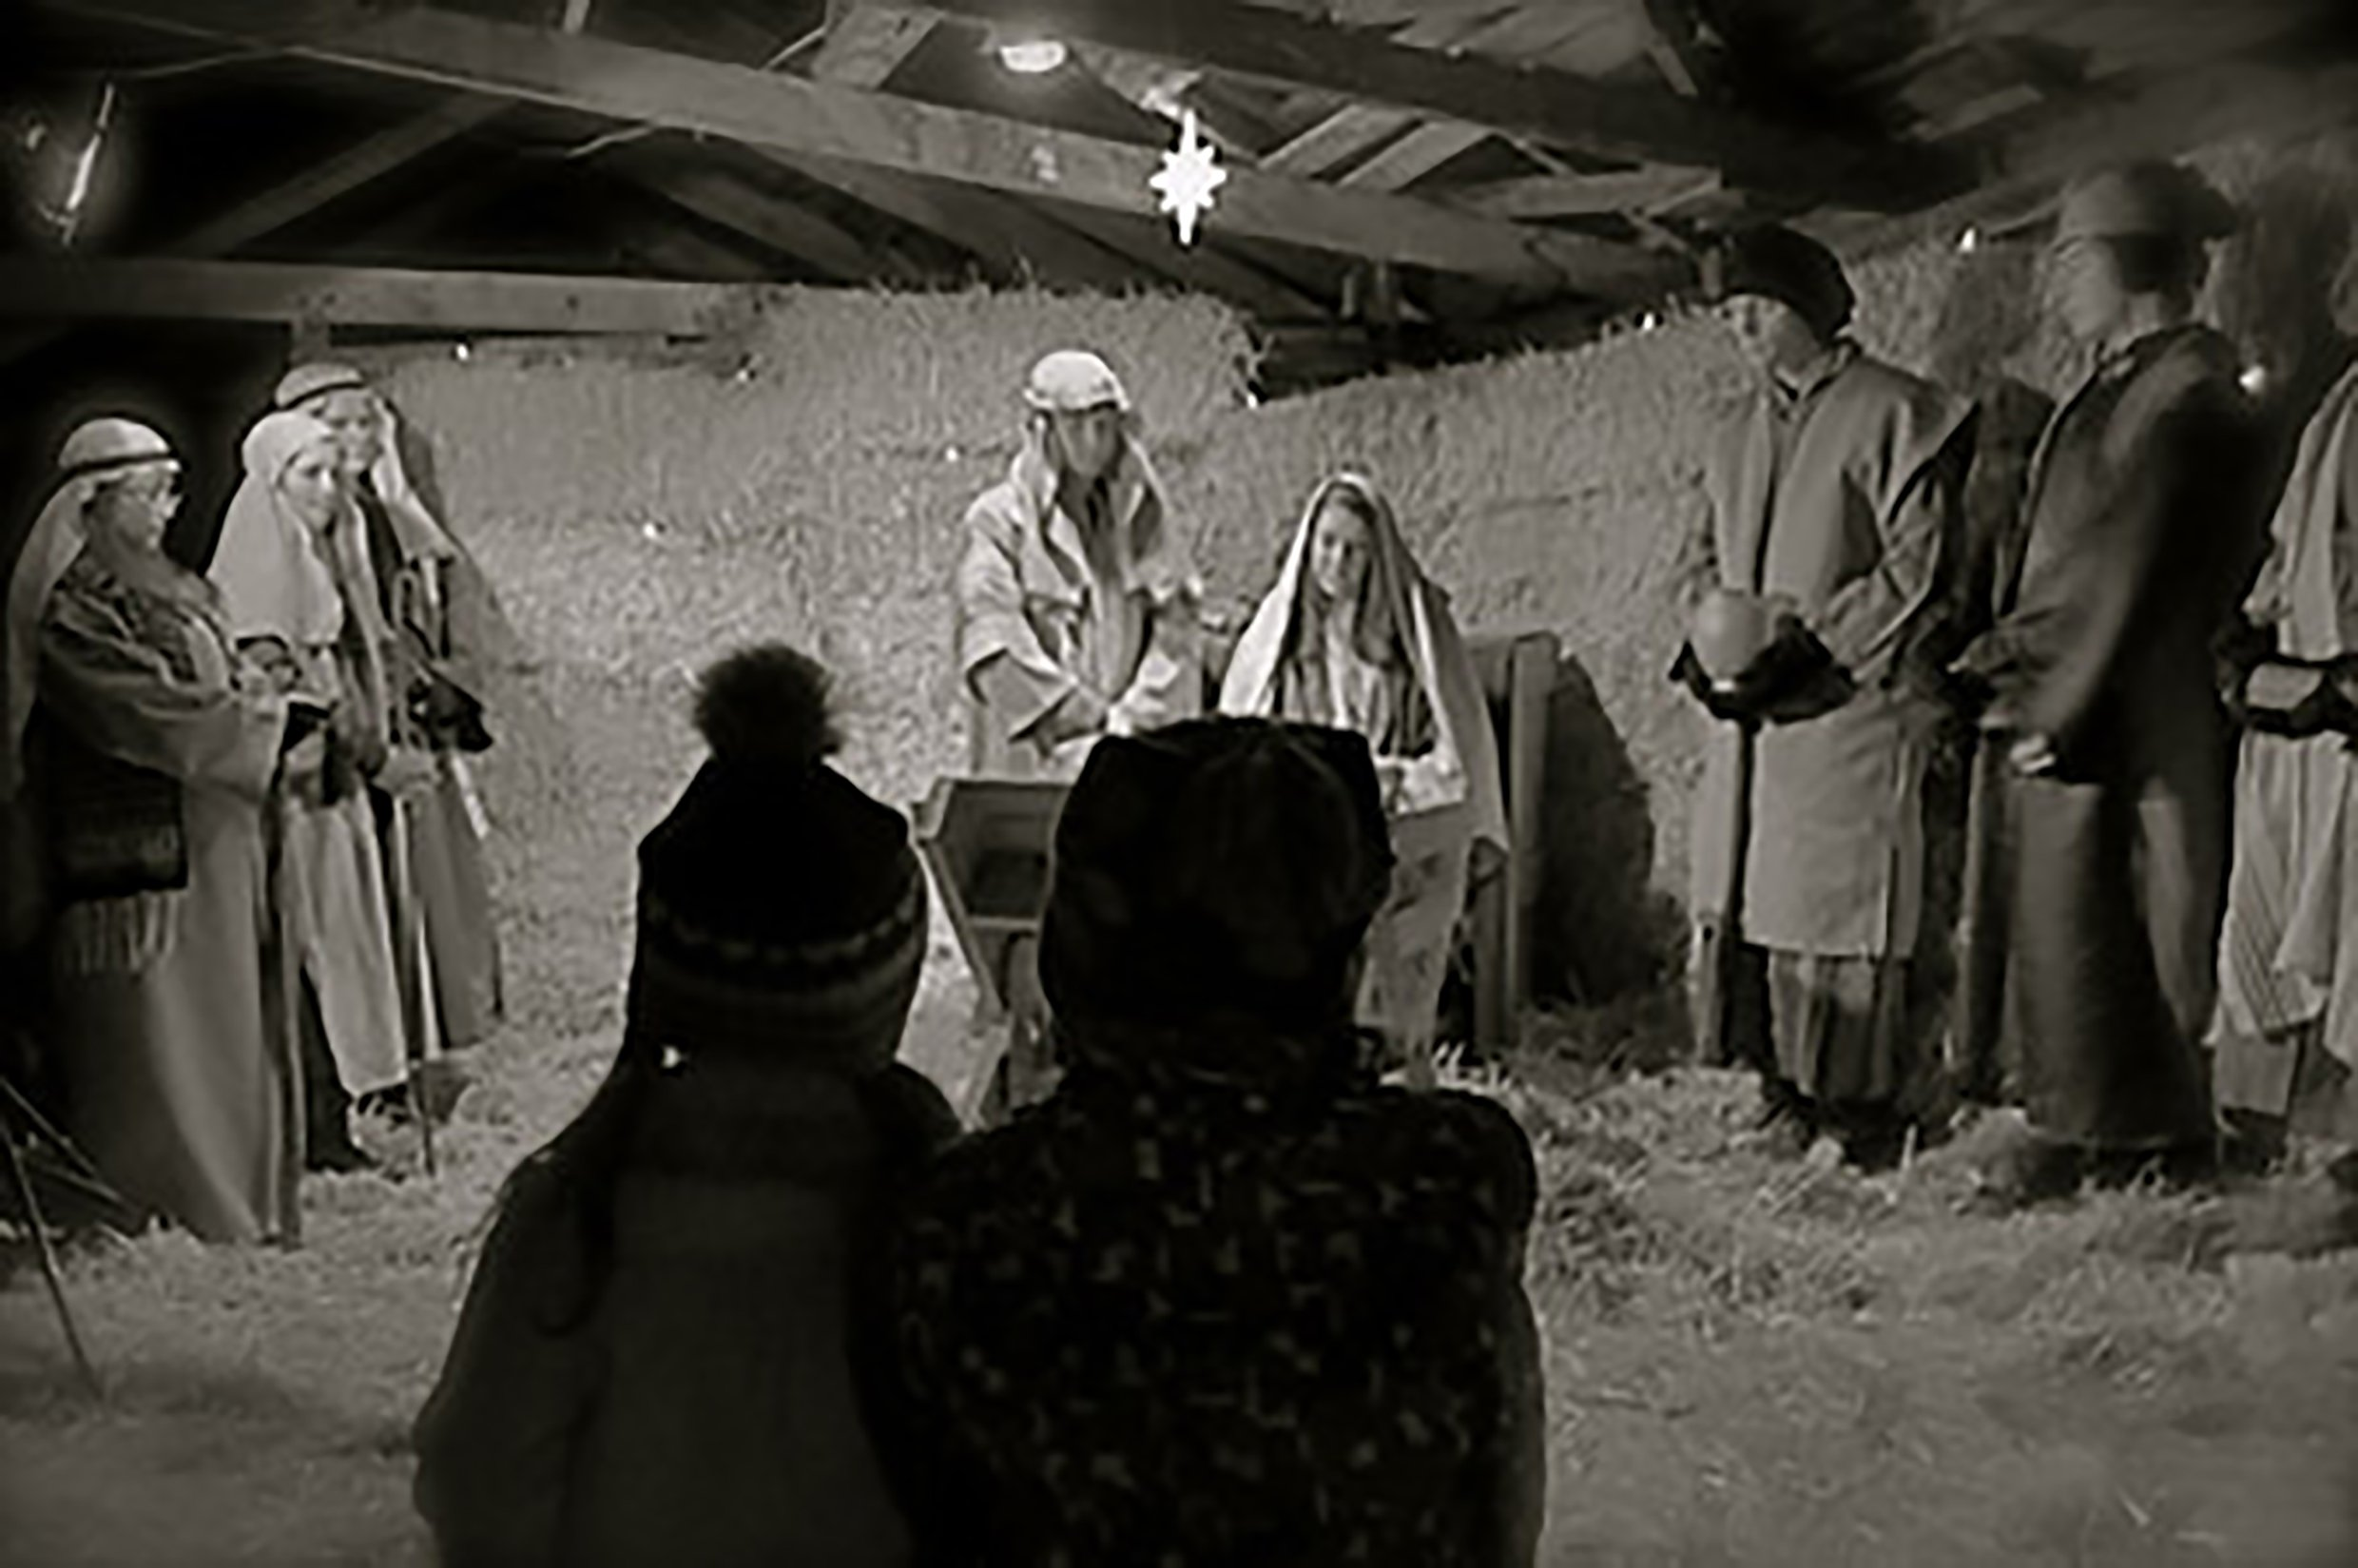 Live Nativity Celebrates the Reason for the Season